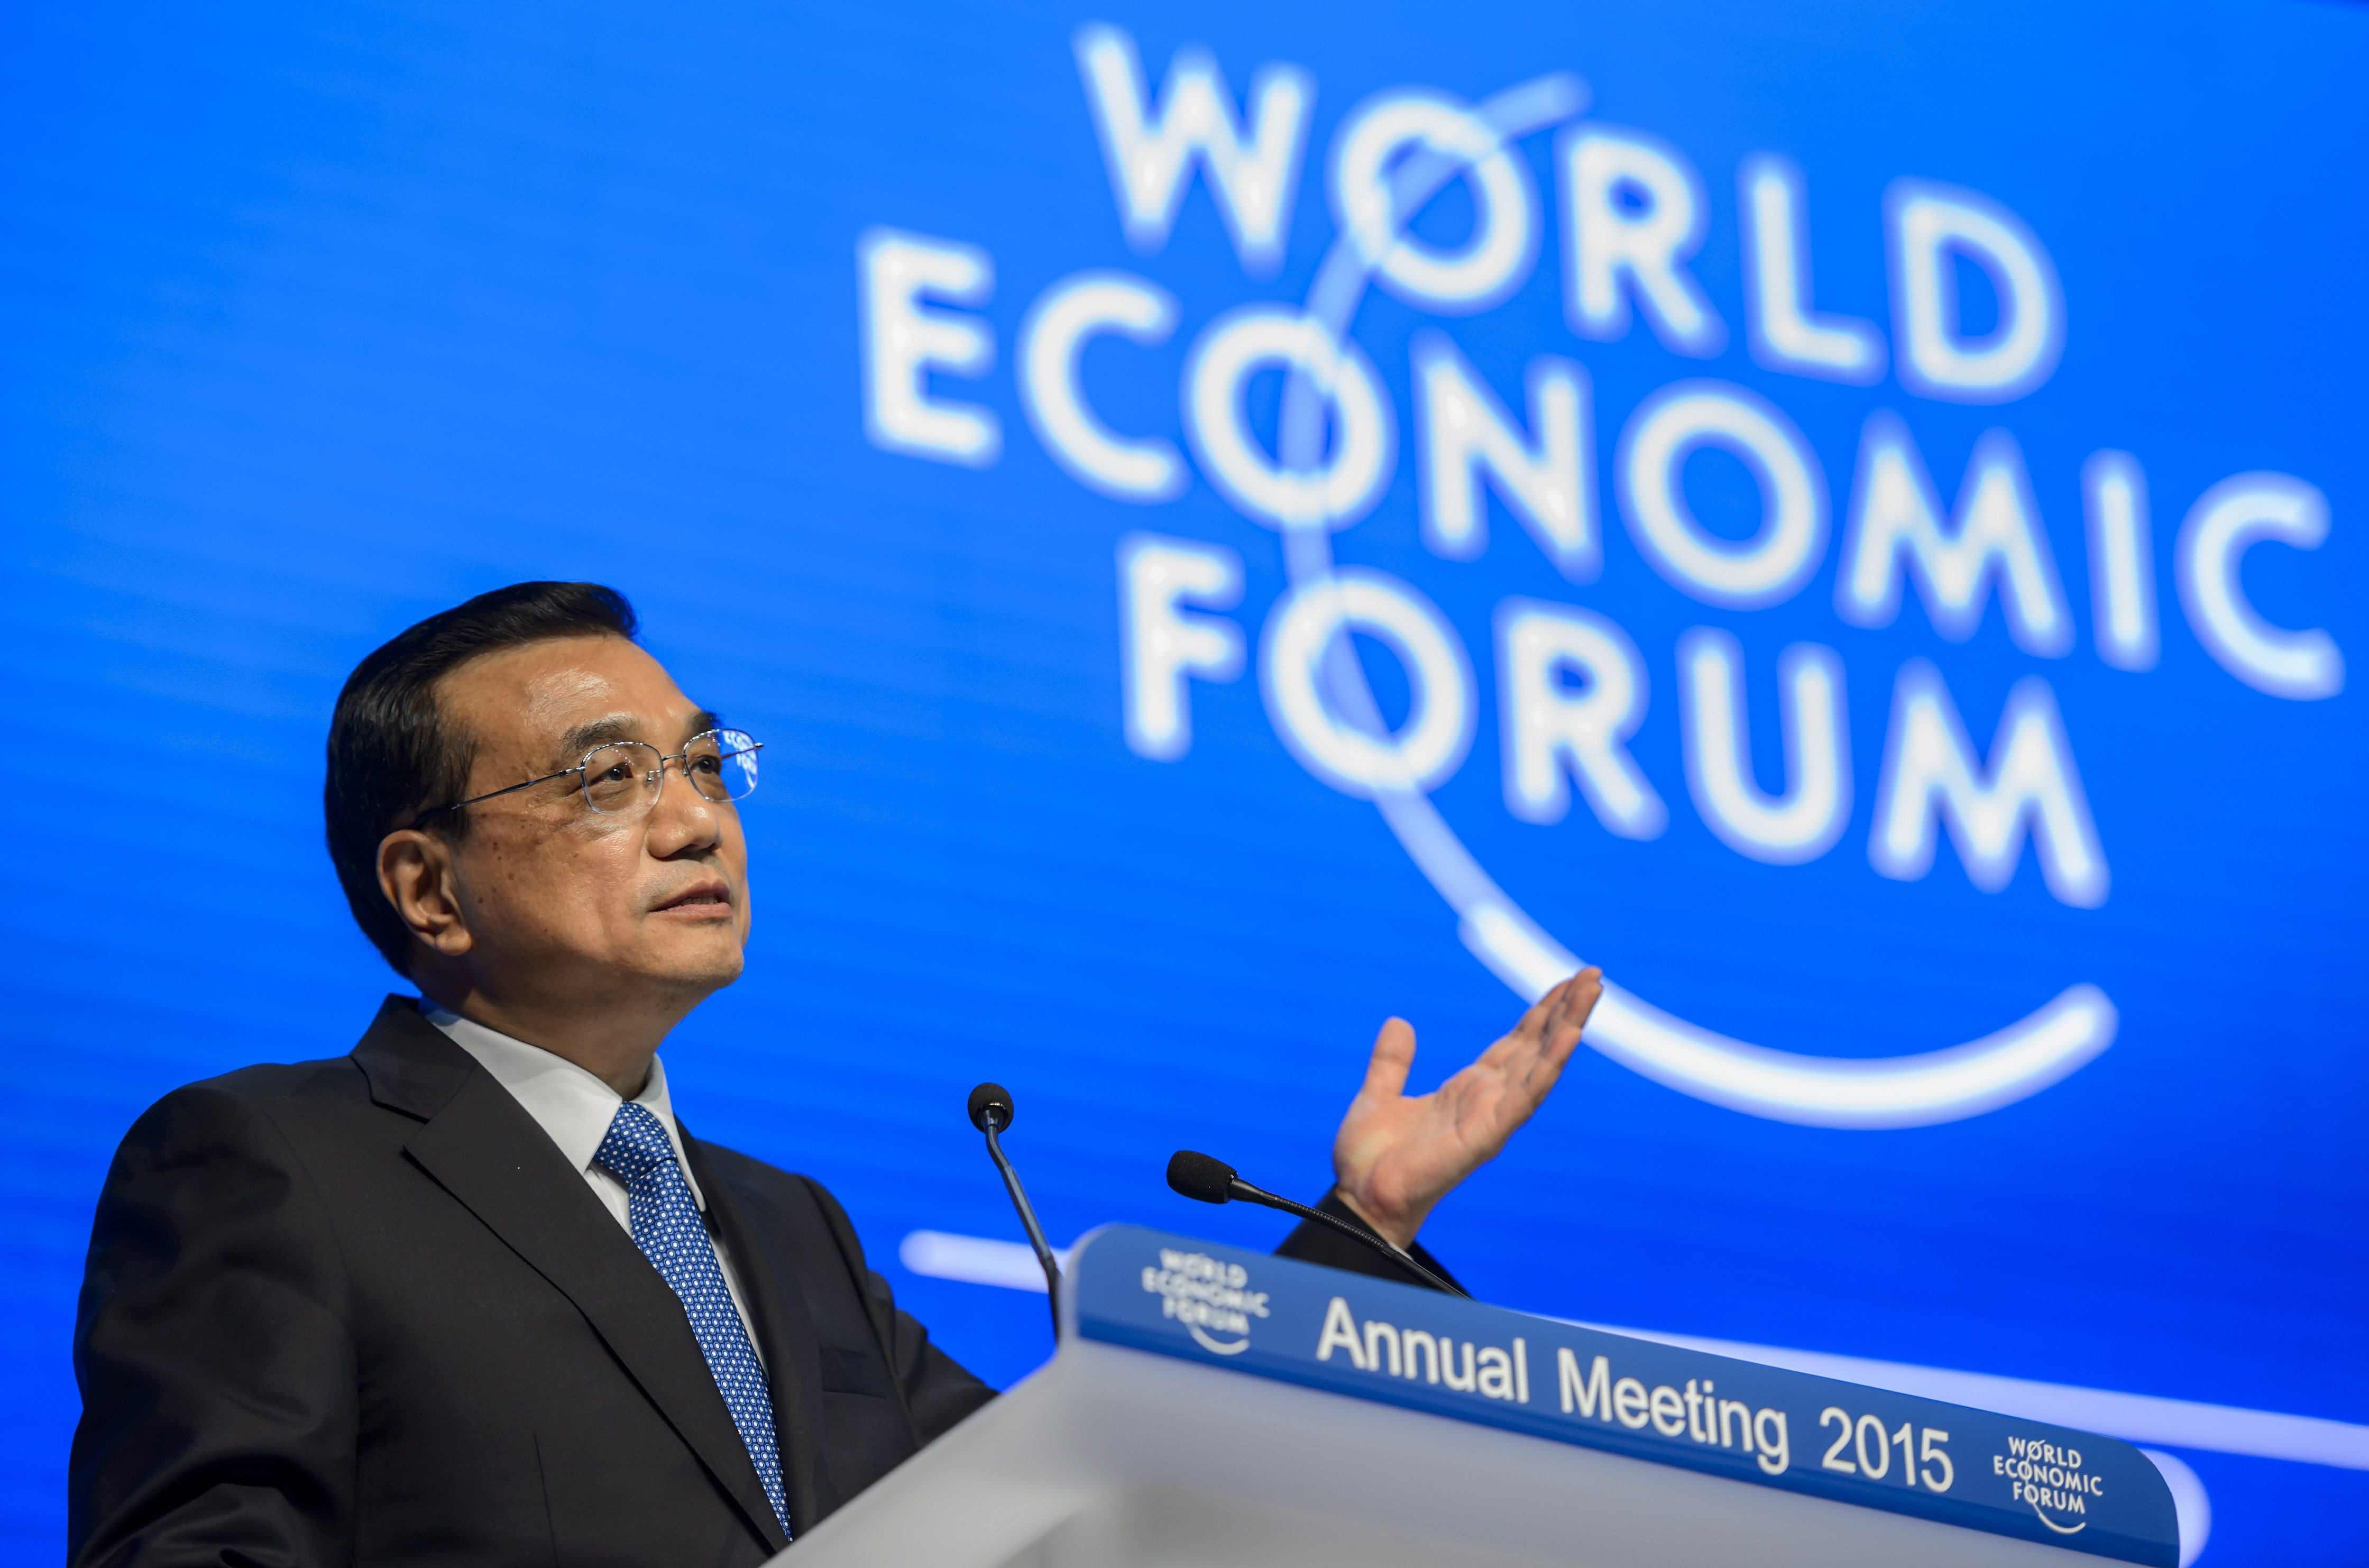 Chinese Premier Li Keqiang attends a session of the World Economic Forum (WEF) annual meeting on Jan. 21, 2015 in Davos, Switzerland.